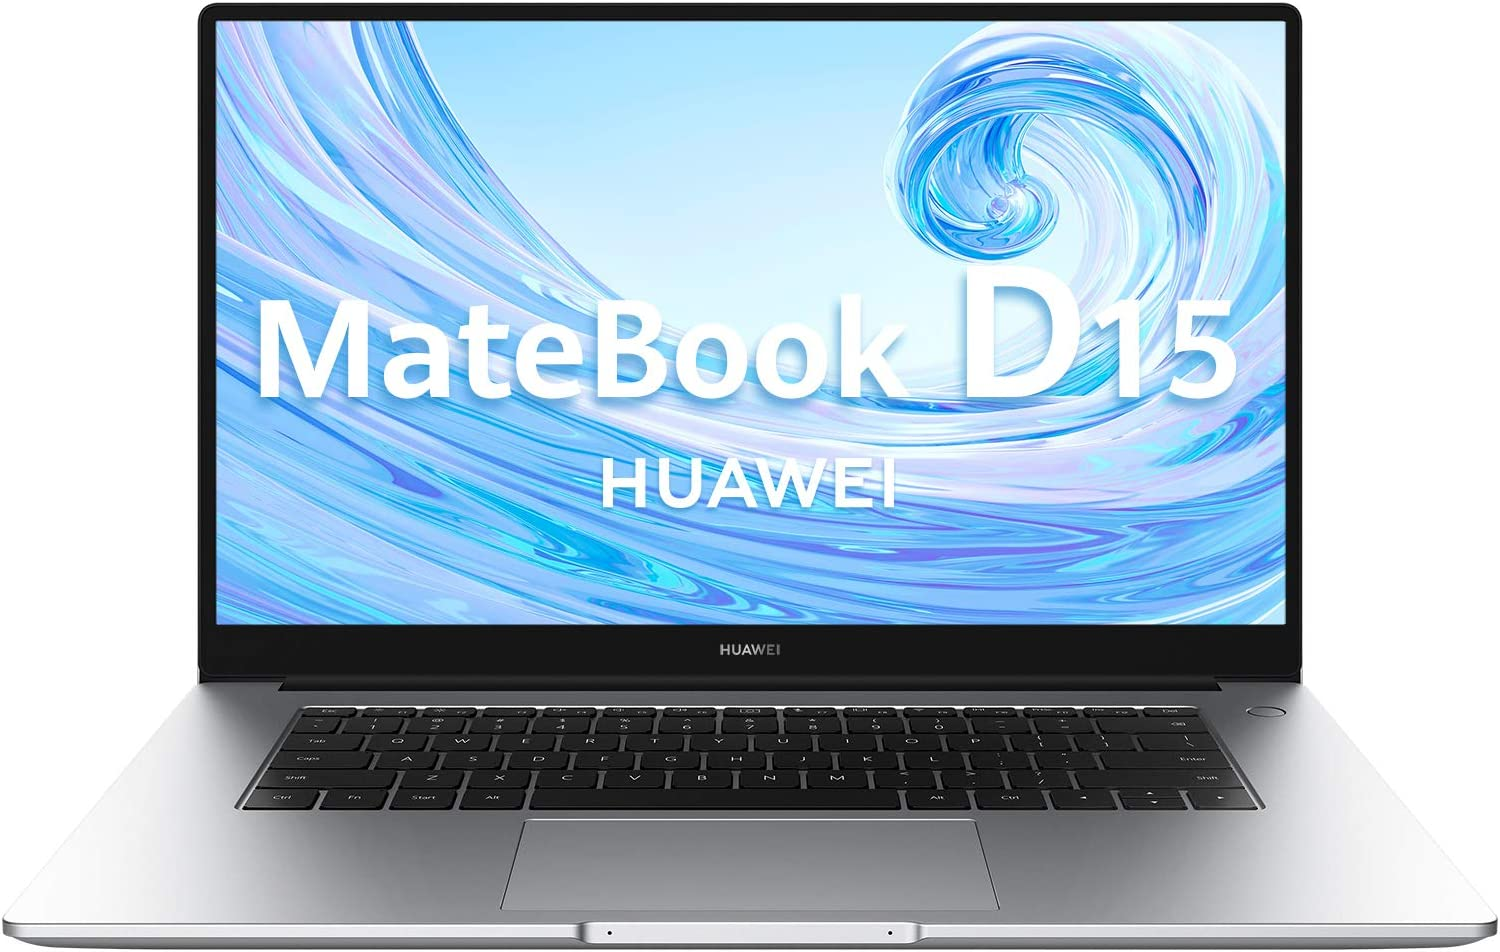 Huawei Matebook D15 - Ordenador Portátil de 15.6'' FullHD (AMD Ryzen 5 3500u, Multi-Screen Collaboration, 8GB RAM, 256GB SSD. Windows 10 Home), Mystic Silver, Teclado Qwerty Español